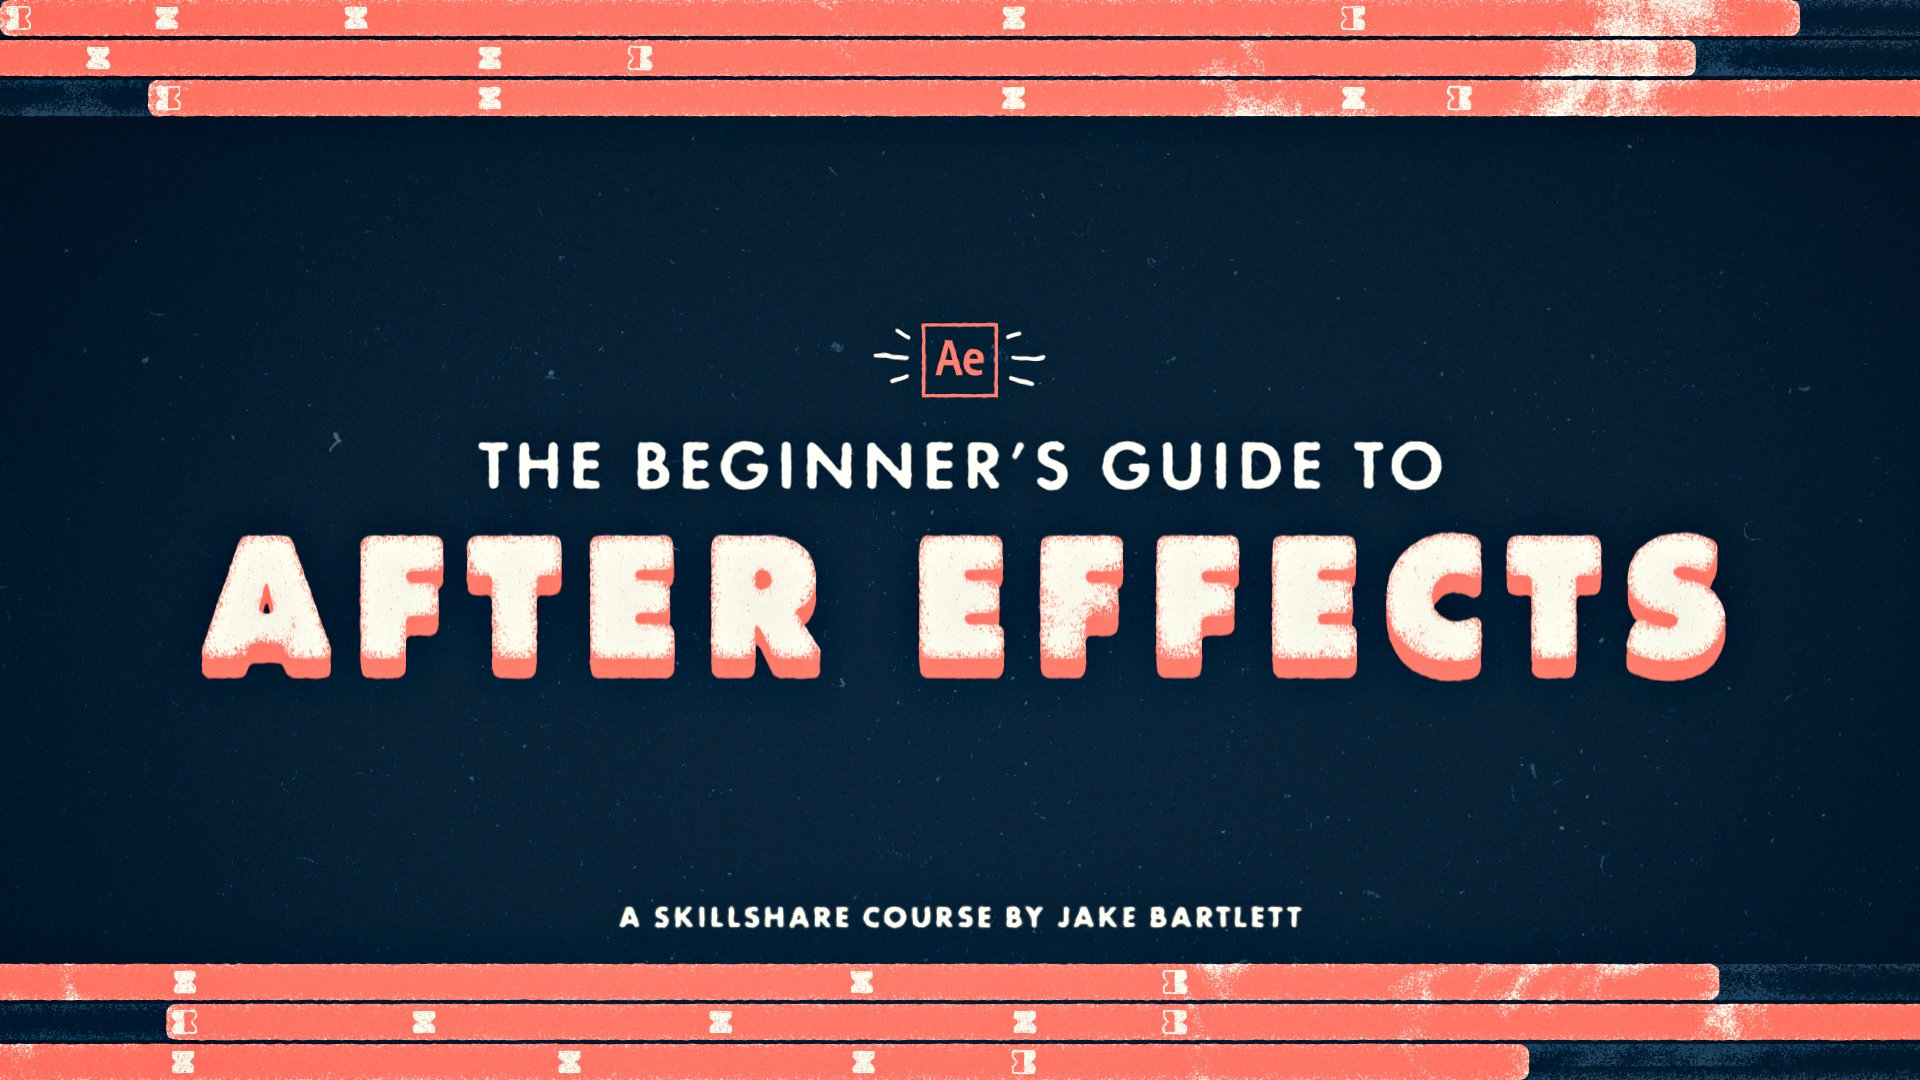 The Beginner's Guide to After Effects | Jake Bartlett